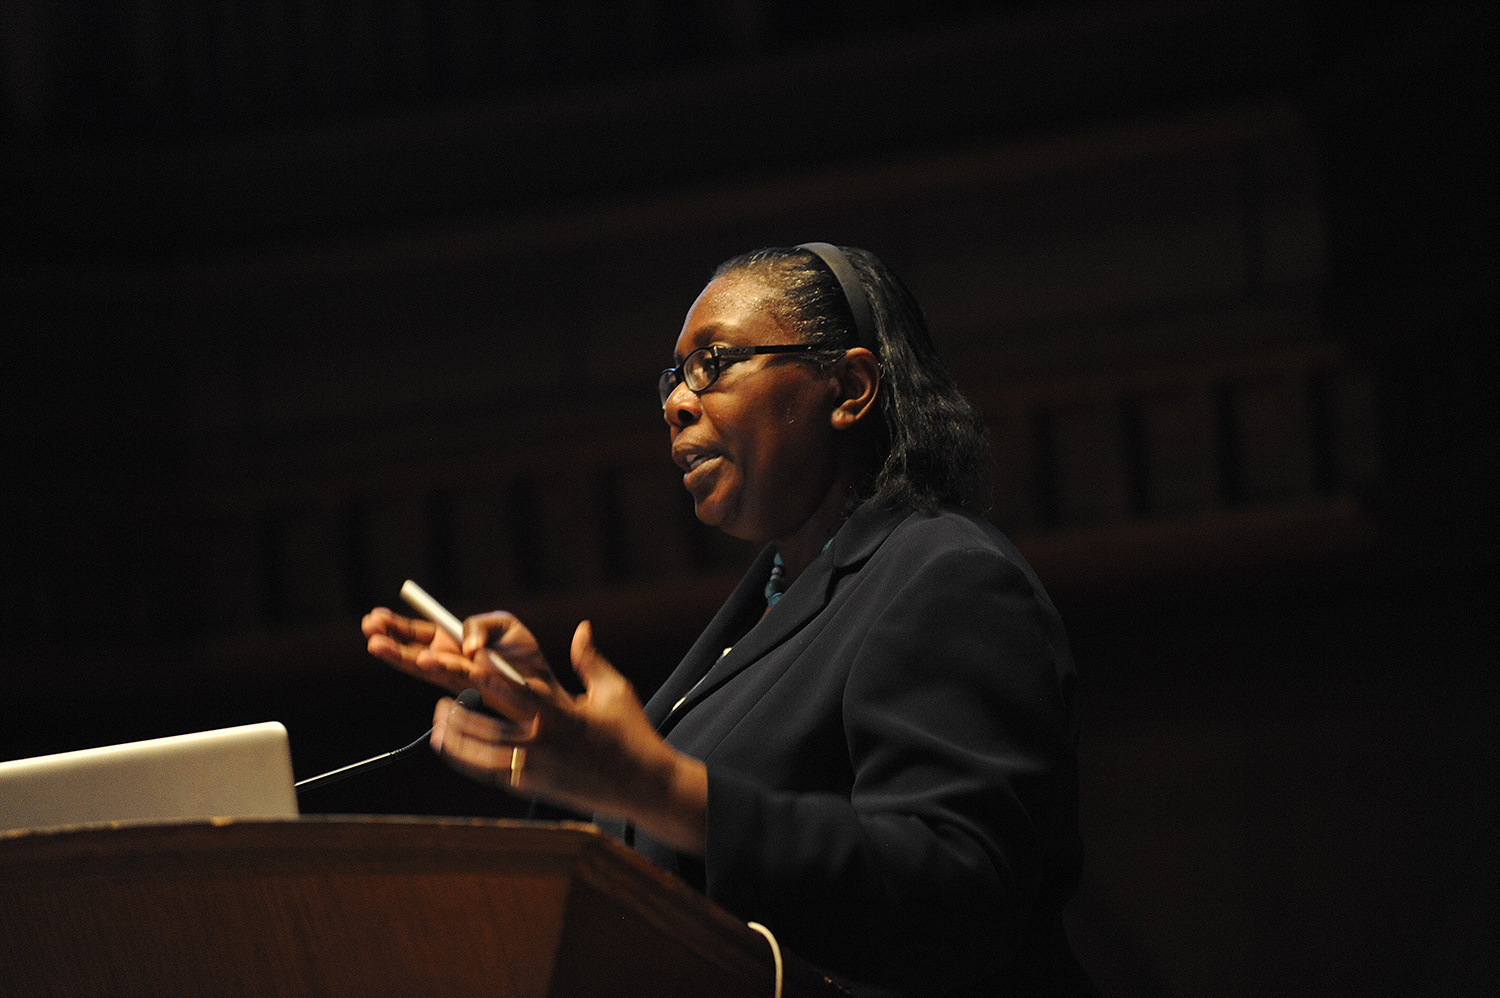 Taylor is professor, James E. Crowfood Collegiate Chair, and director of diversity, equity and inclusion at the University of Michigan. She is past chair of the environment and technology section of the American Sociological Association.